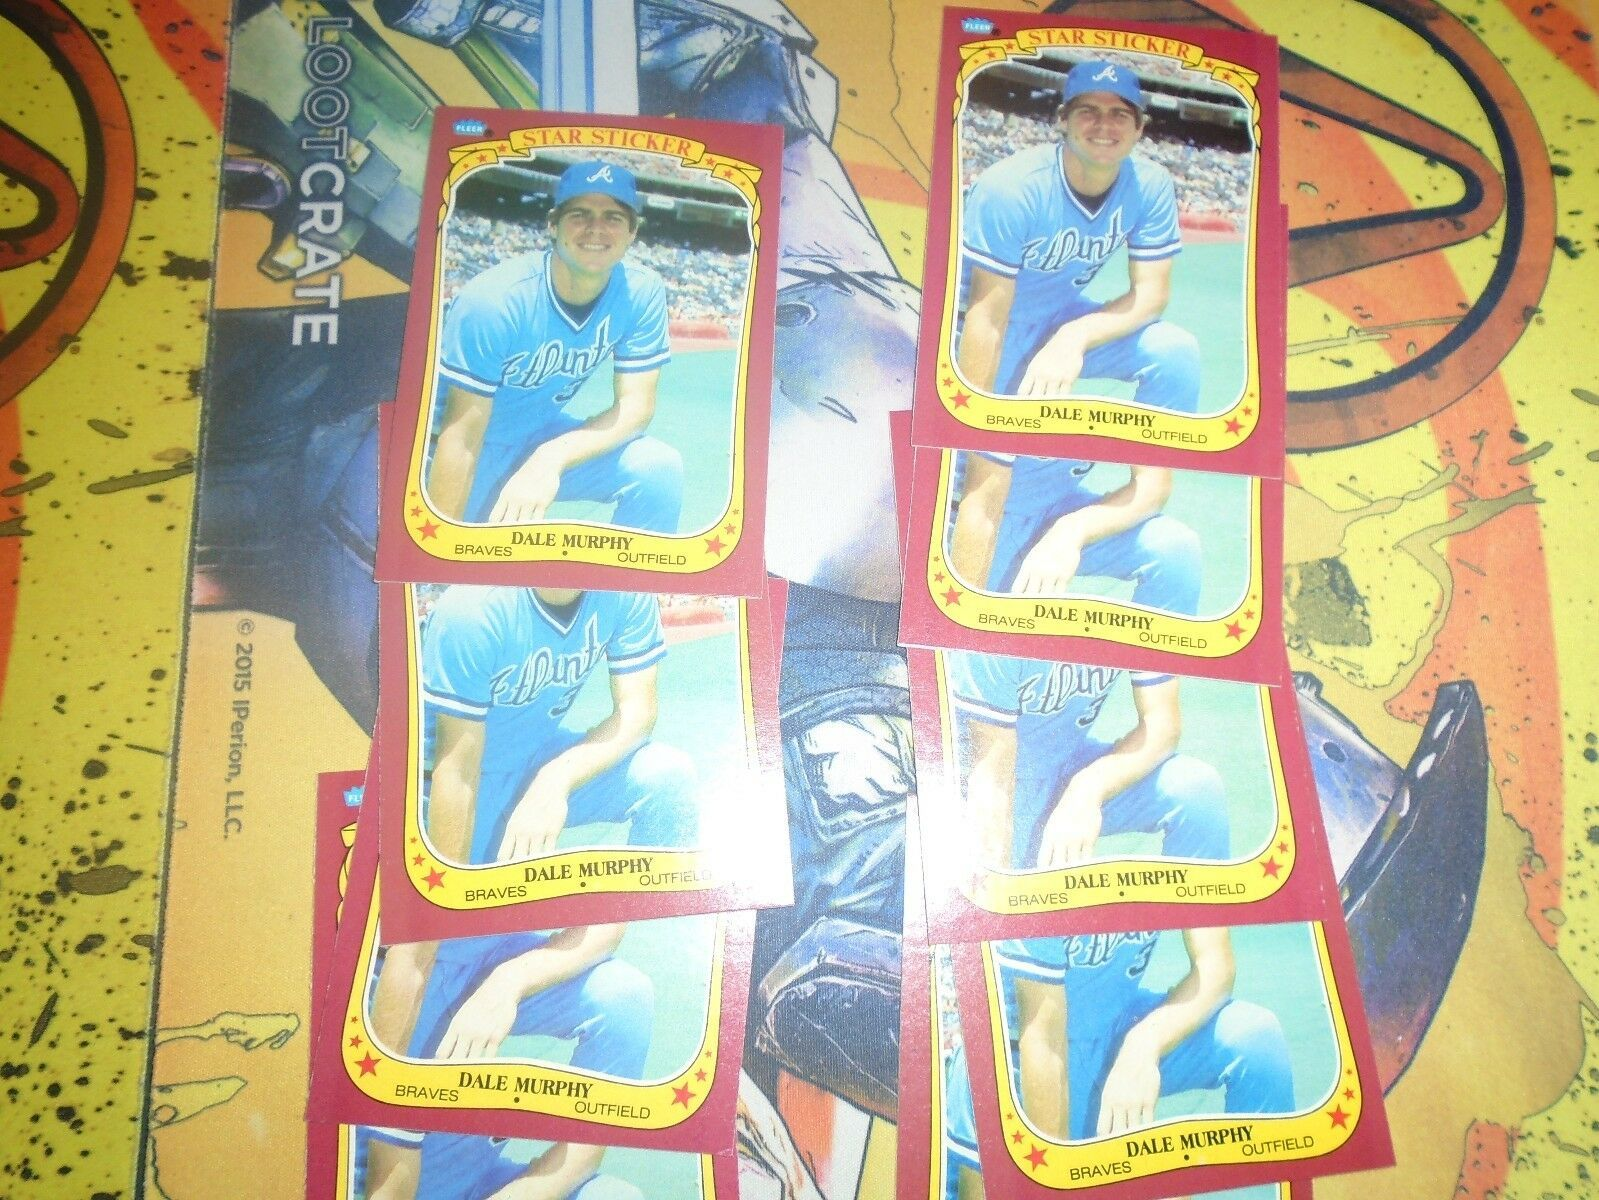 1986 Fleer Star Stickers Dale Murphy #80 Braves Lot of 9